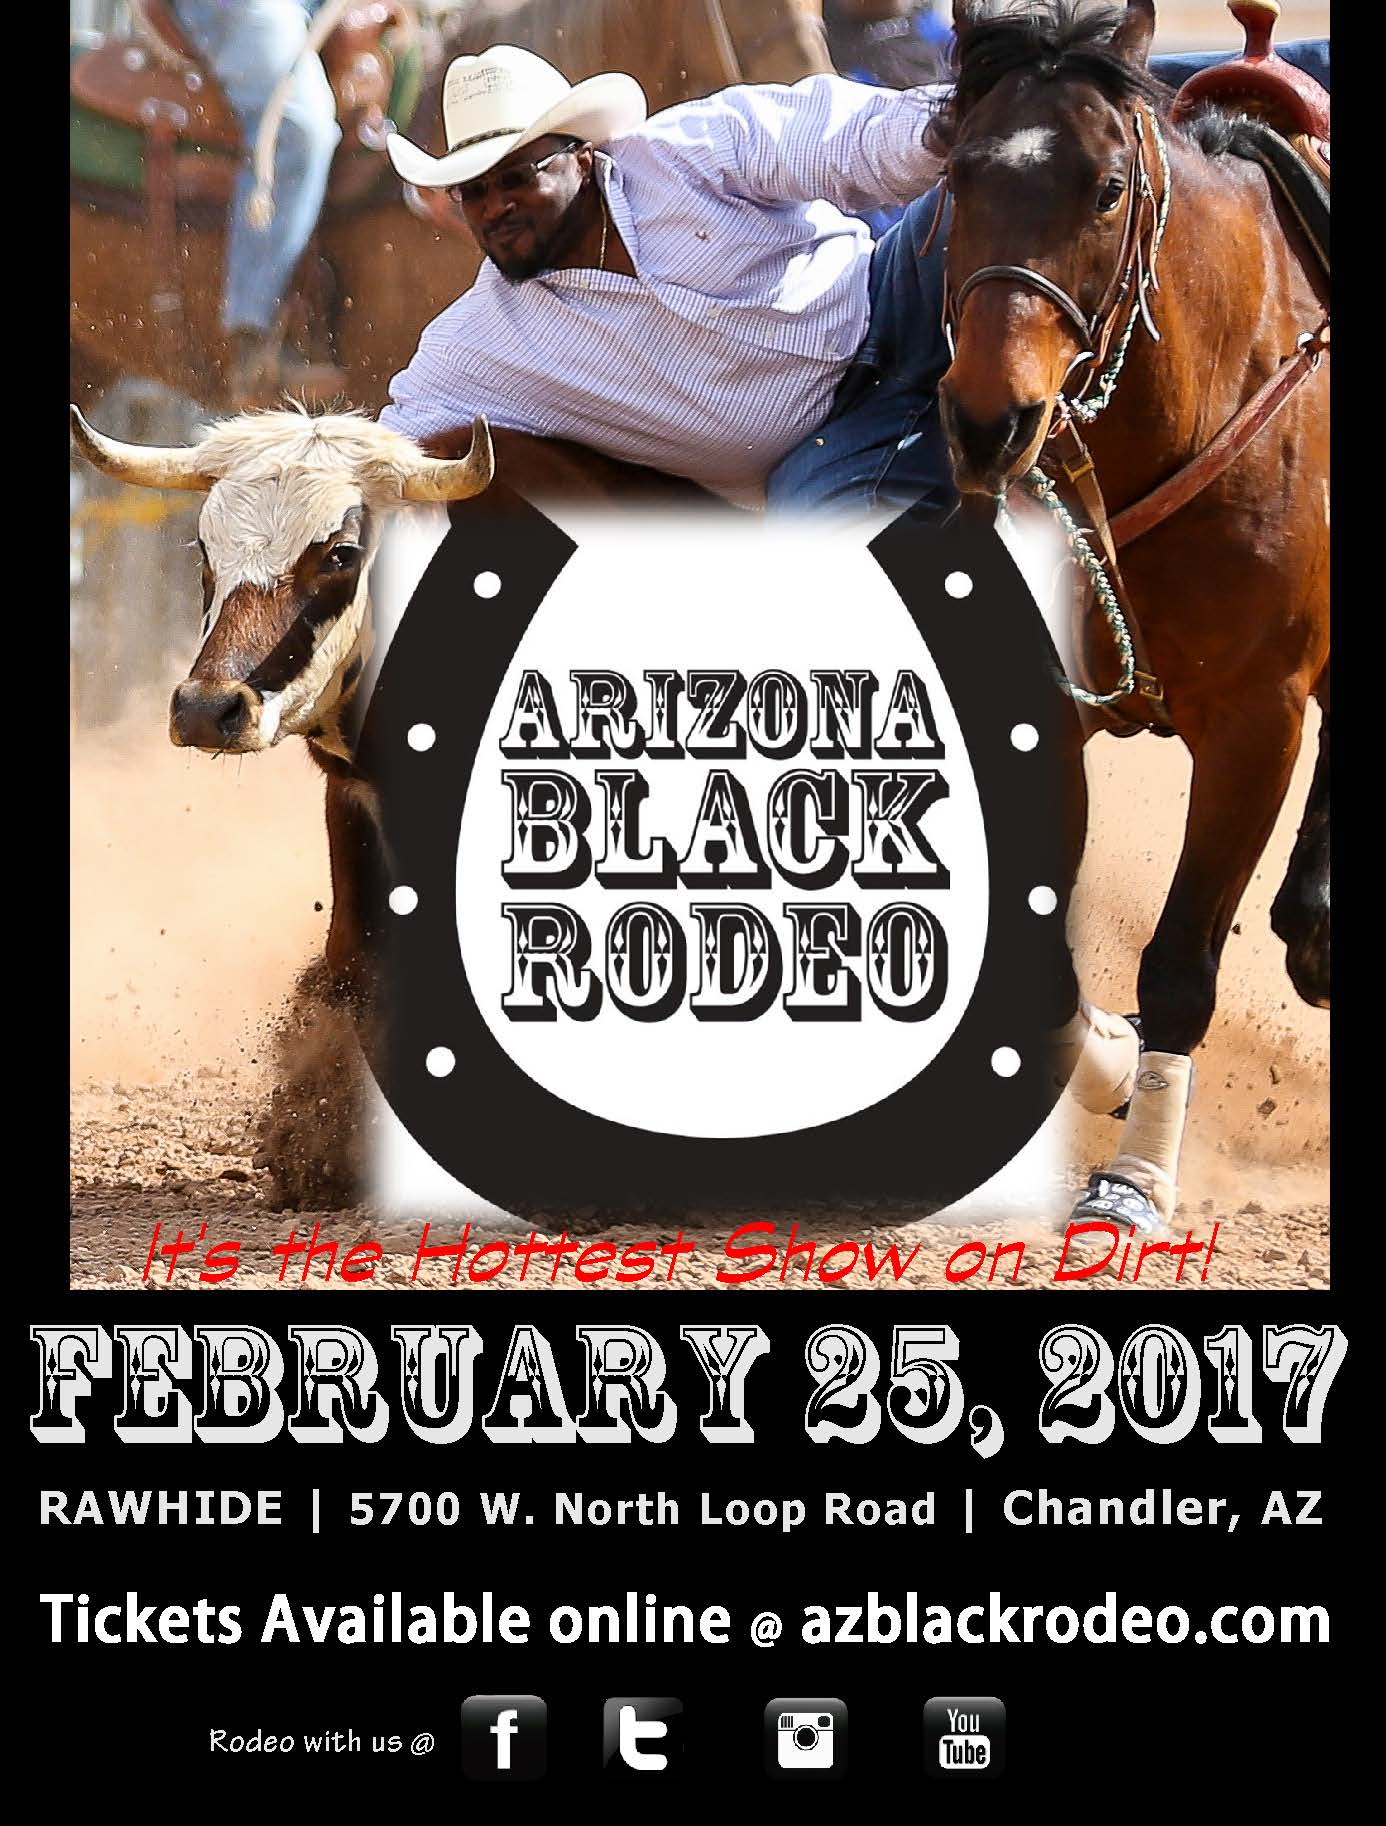 Let's RODEO 2017